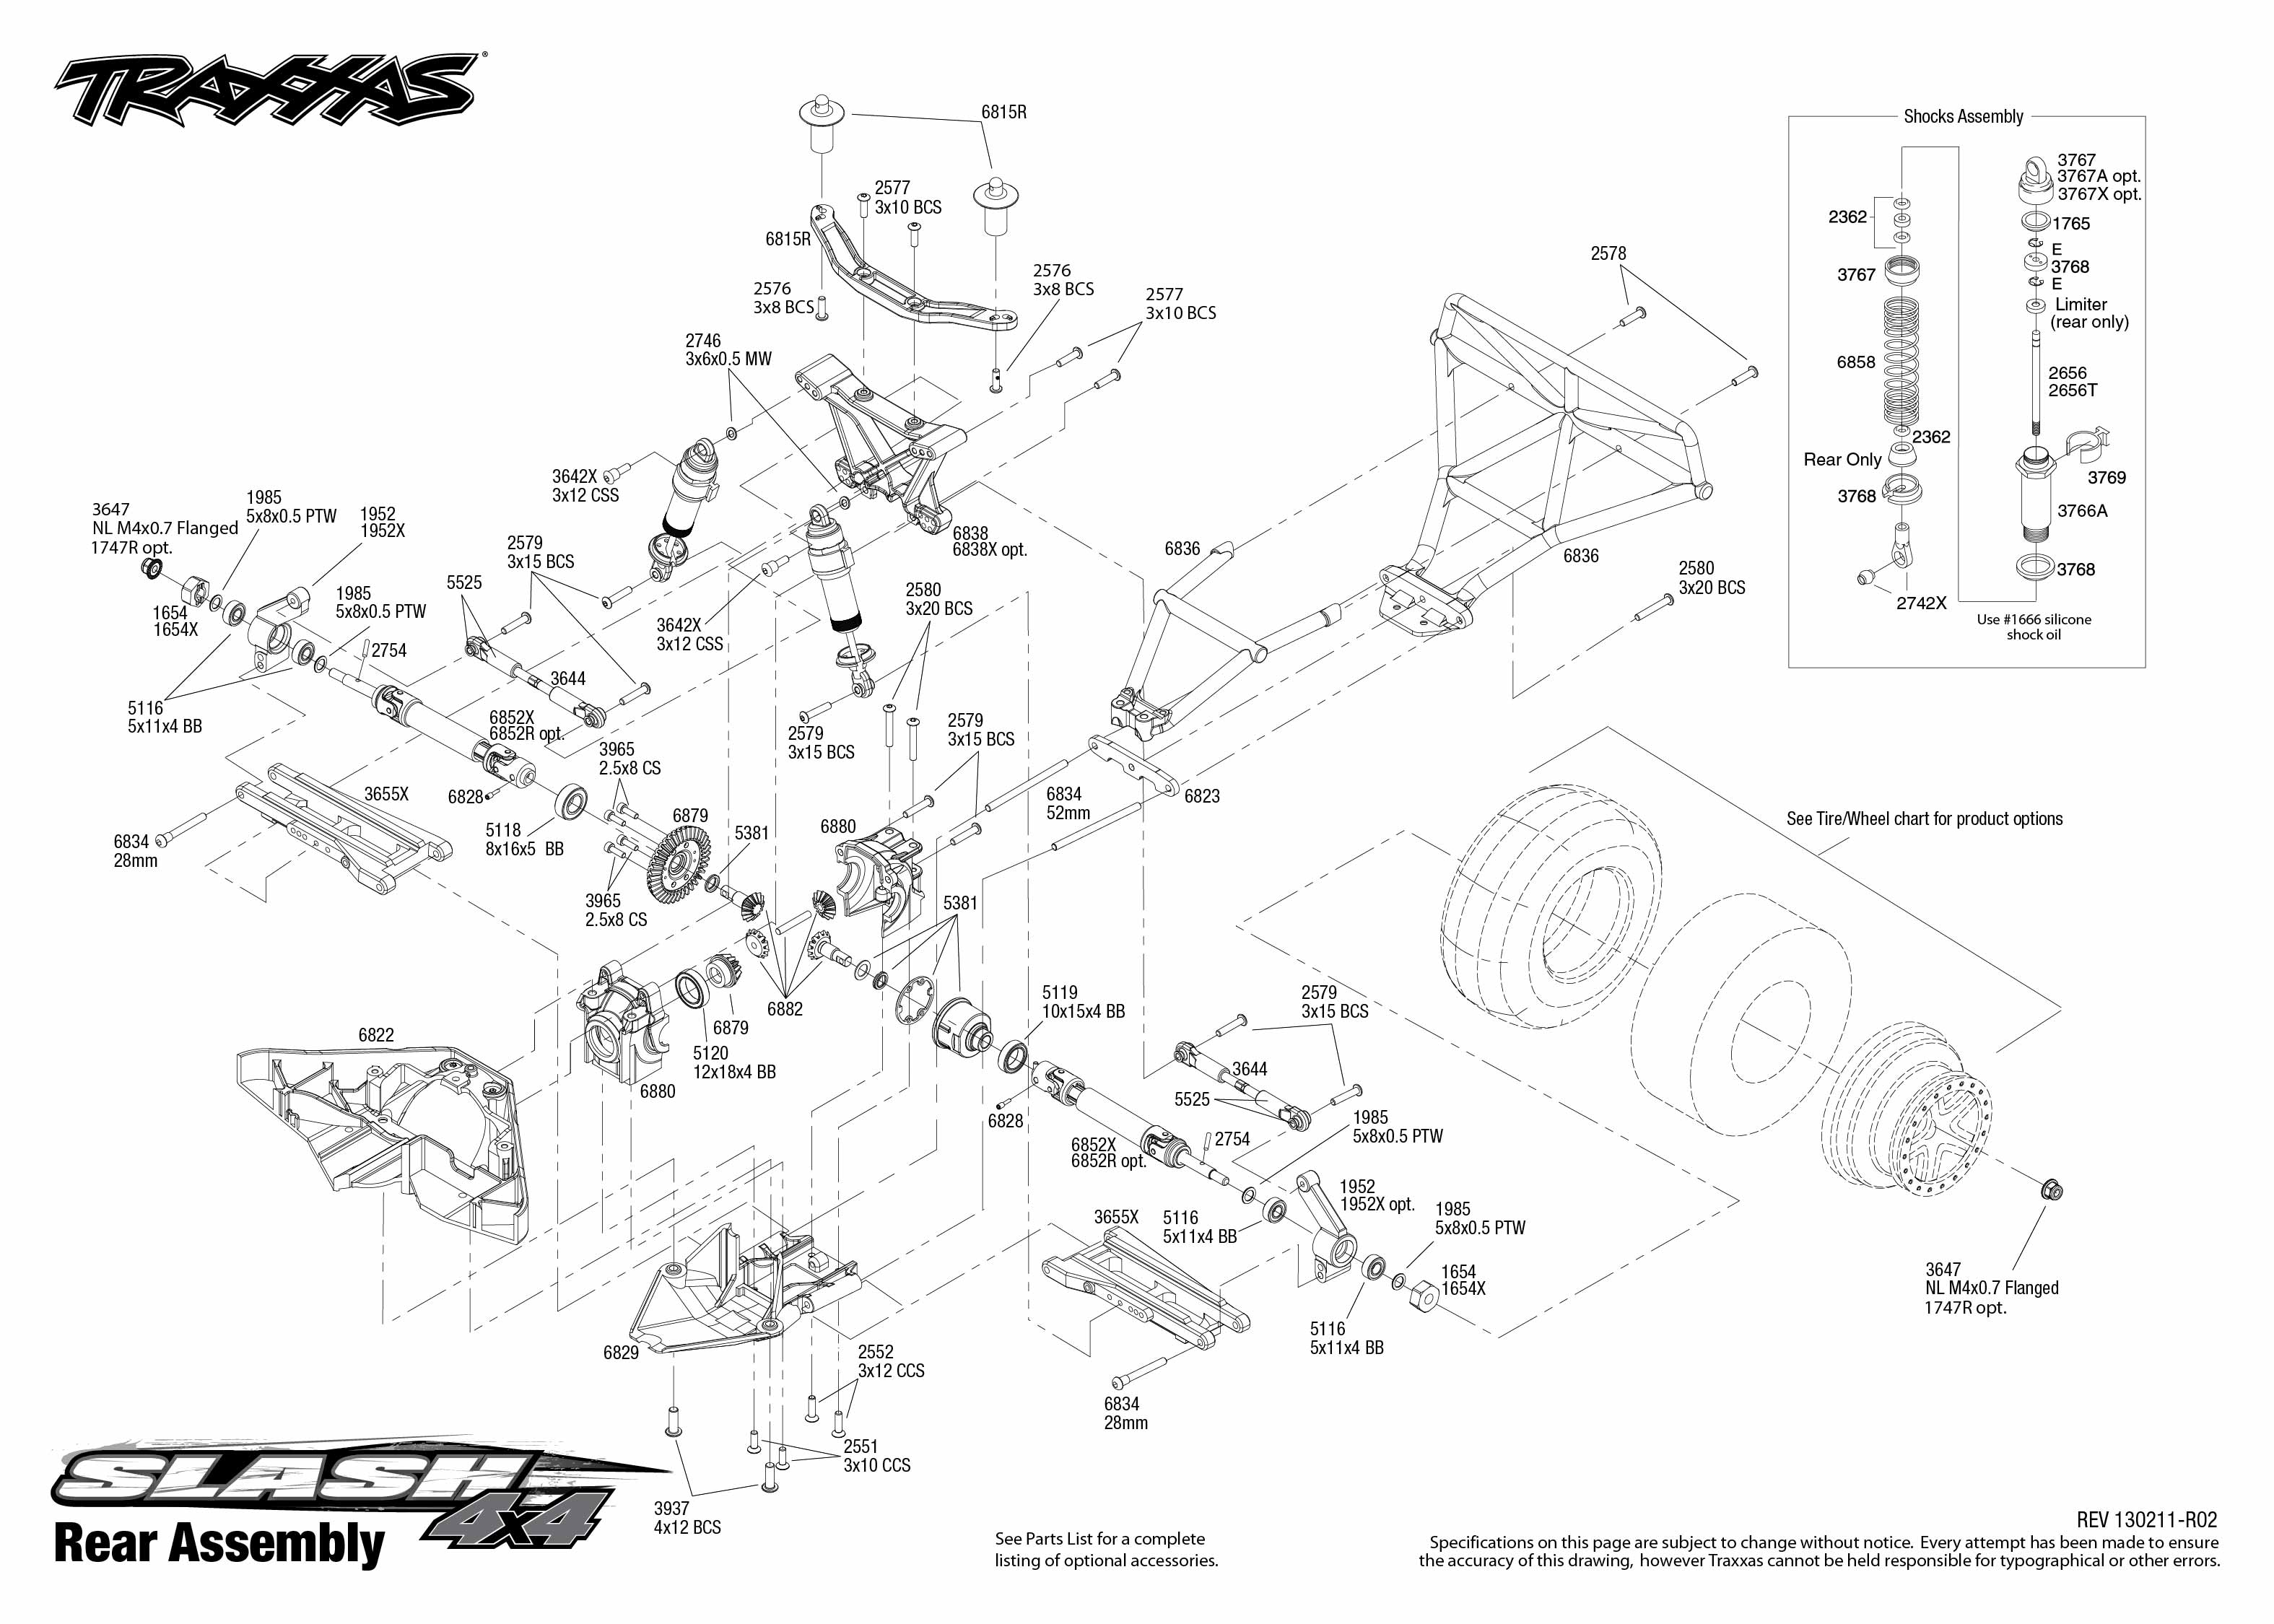 6808L_TQi_explodedviews_130211_6808 Rear Assembly_0 need a part number traxxas summit wiring diagram at soozxer.org